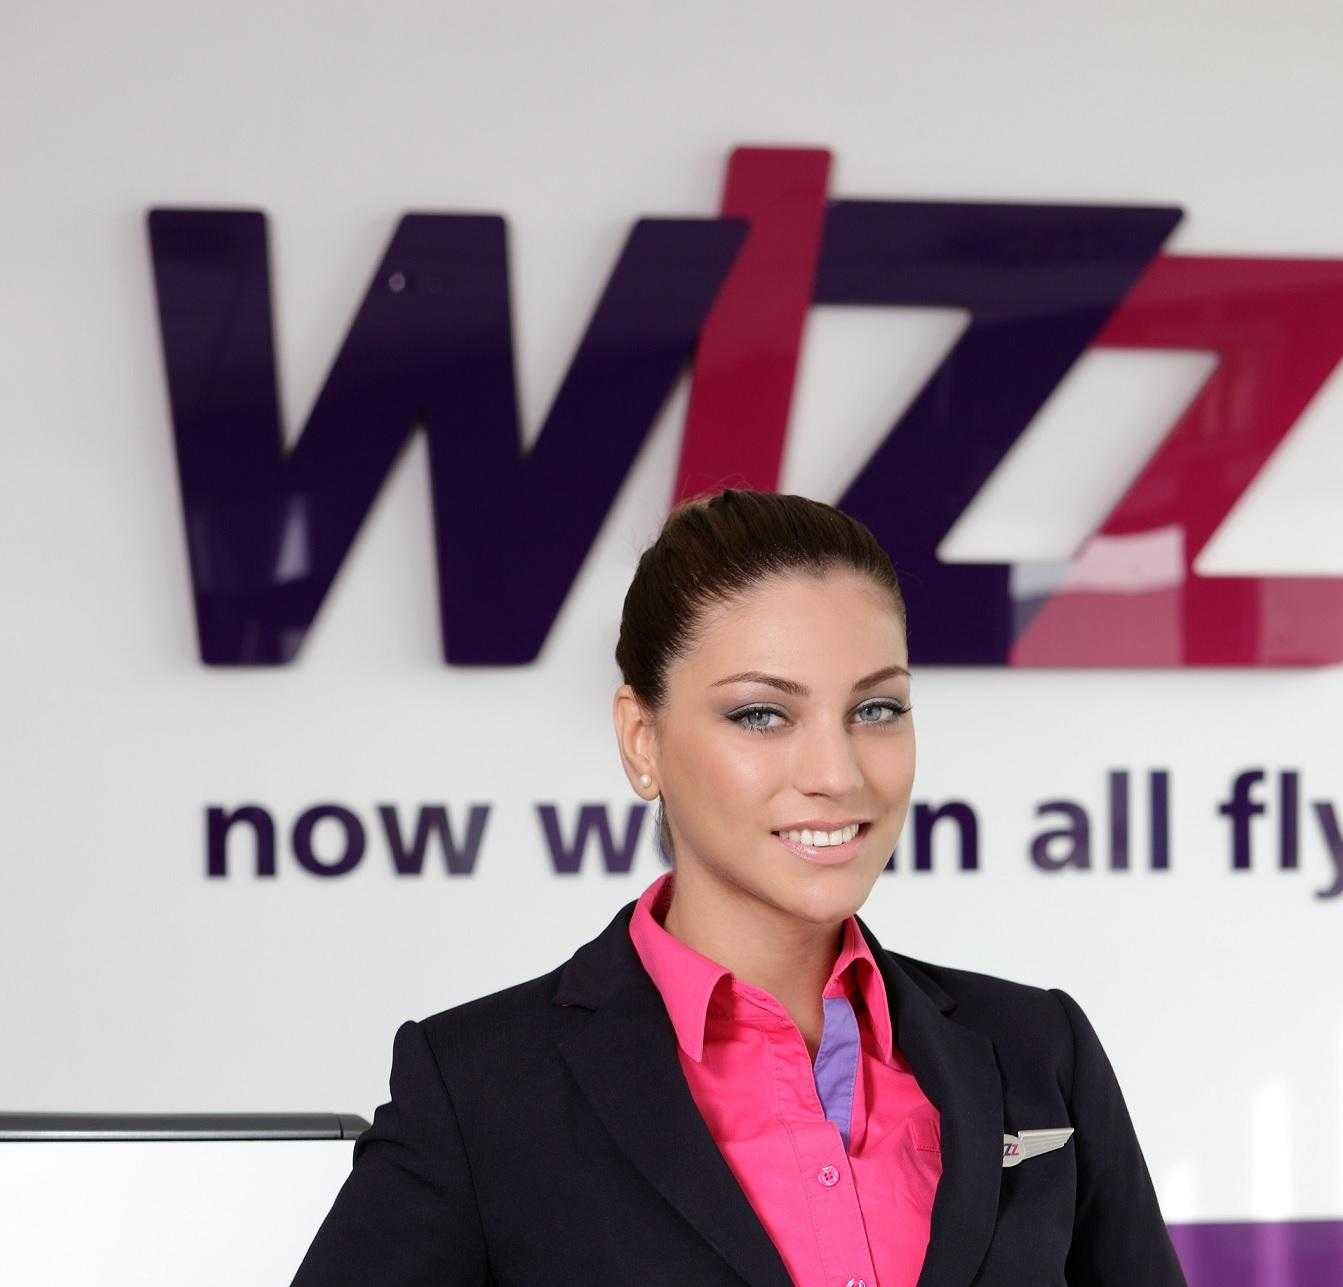 Alice Ciucur Ambasador Wizz Air in Romania